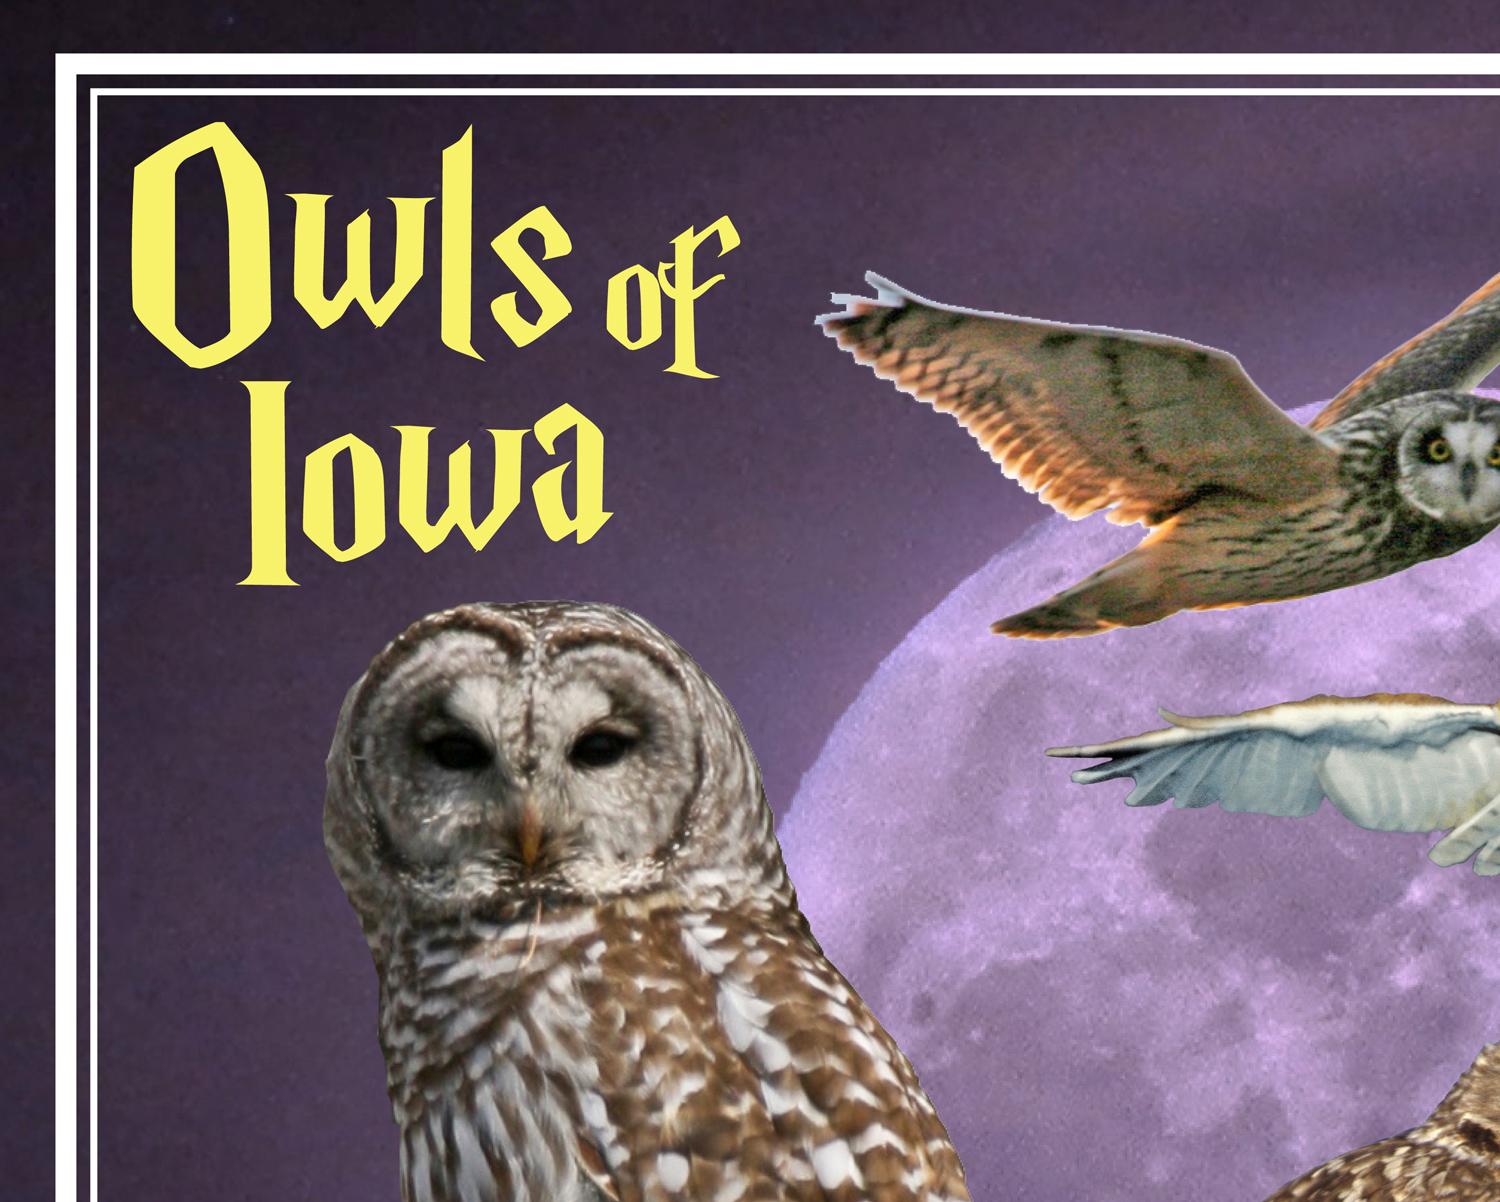 Owls of Iowa poster, by Billy Reiter